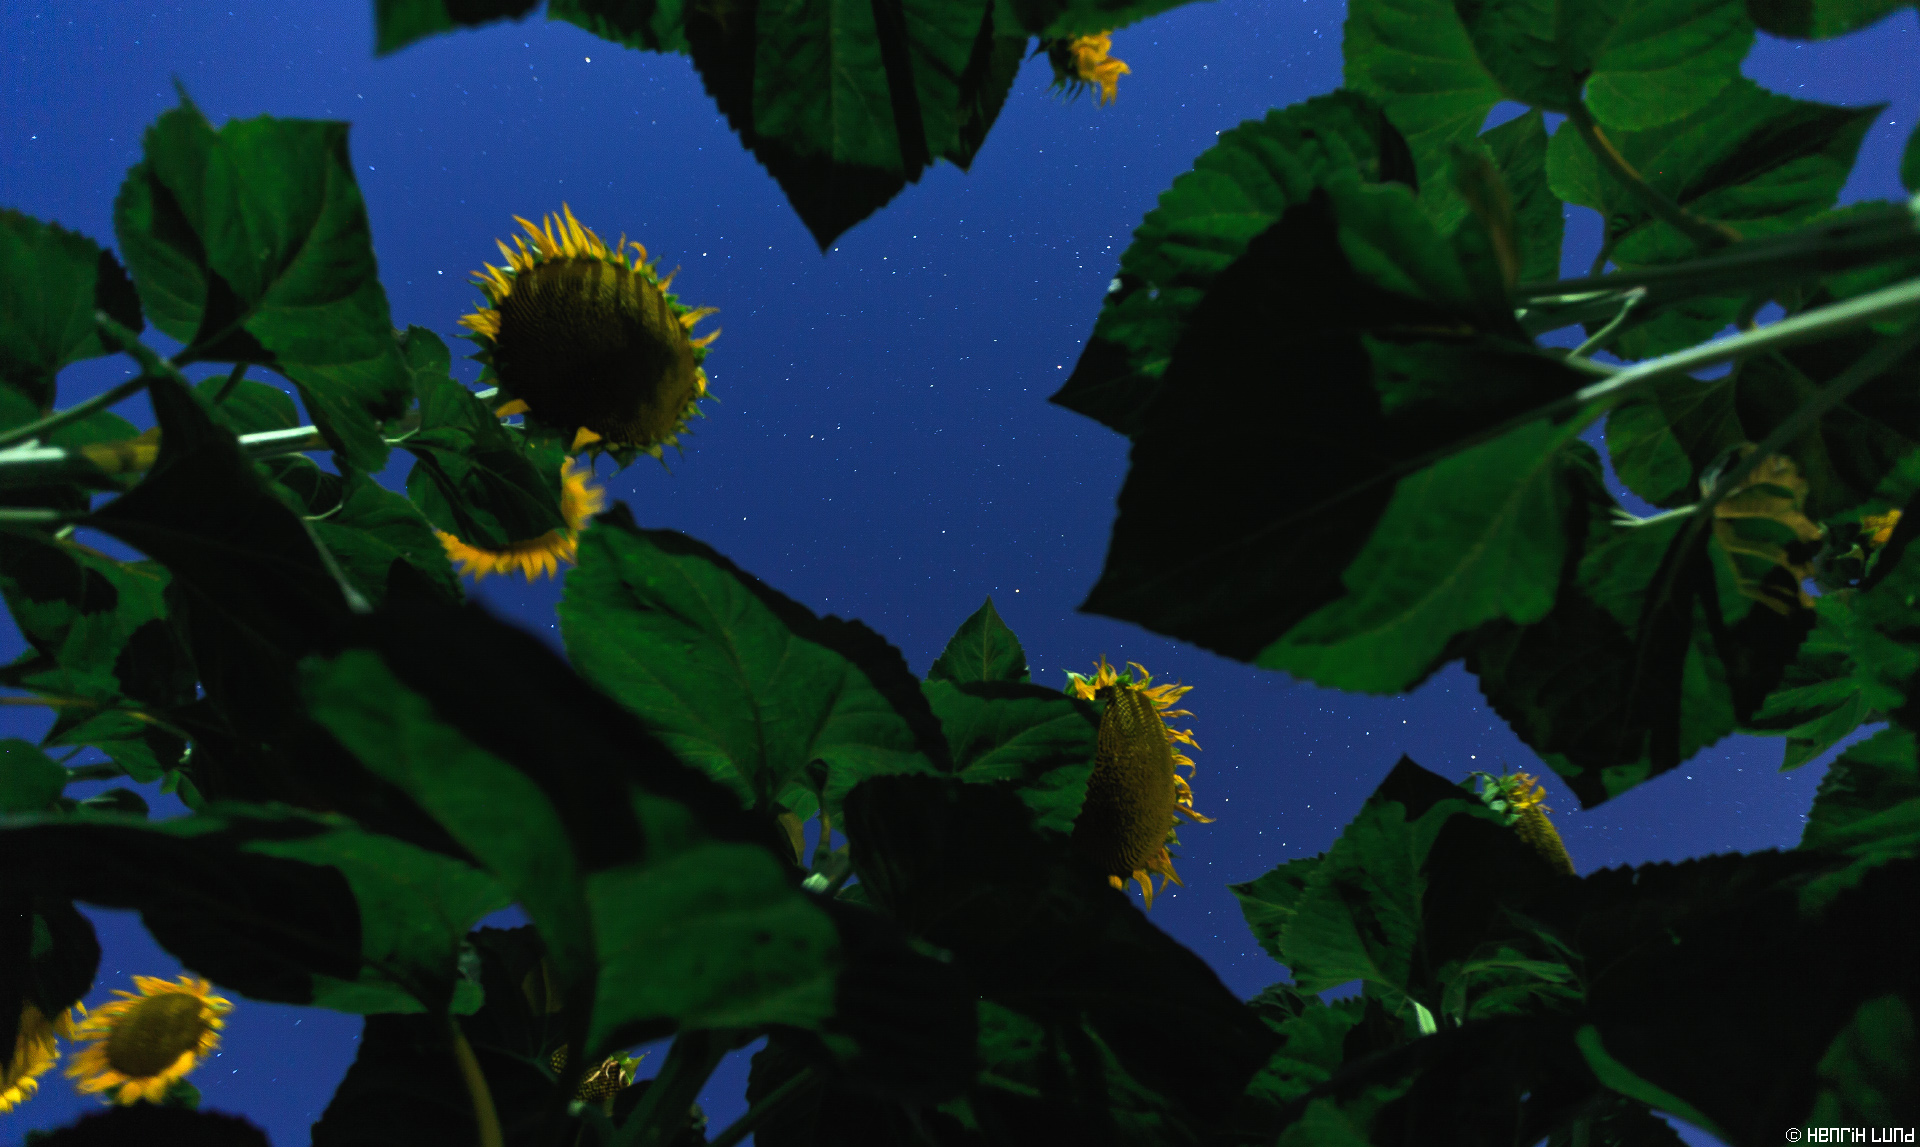 Sunflower field at fullmoon with stars. Osimo, Marche, Italy. July 2015.